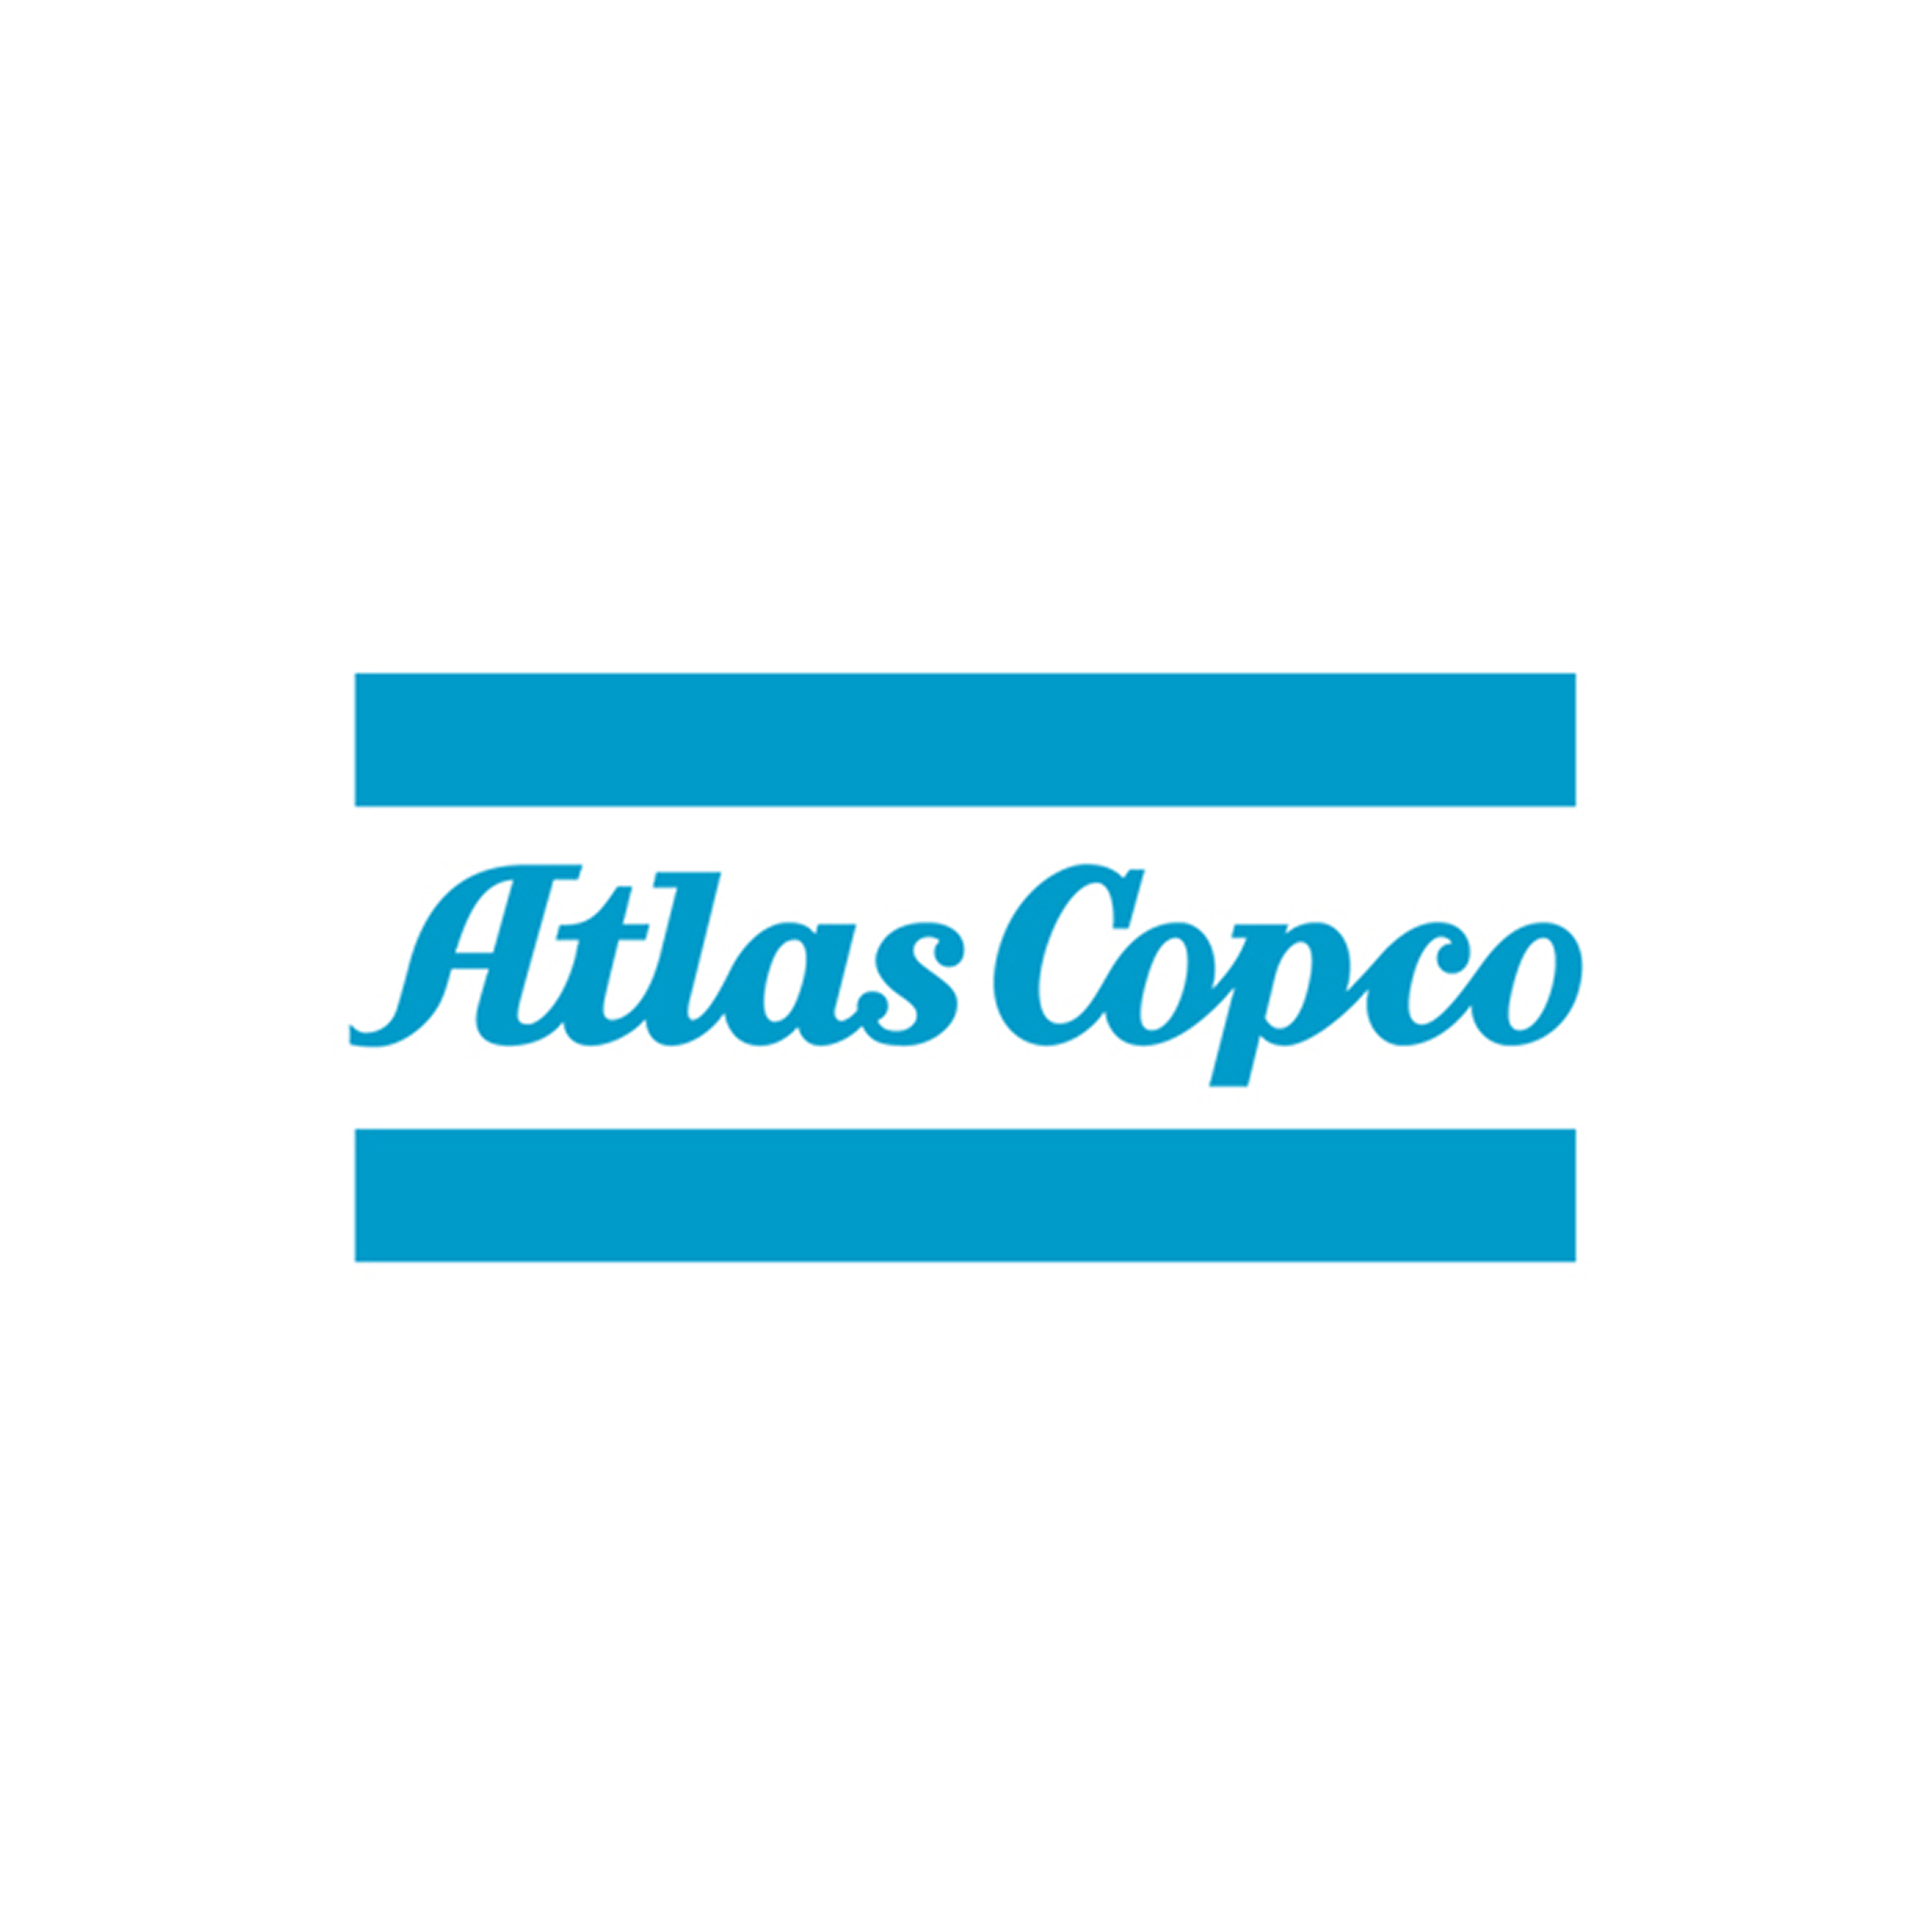 Laser cut Atlas Copco decal. Often used when branding cars, front desks and other areas where your logo will be seen.